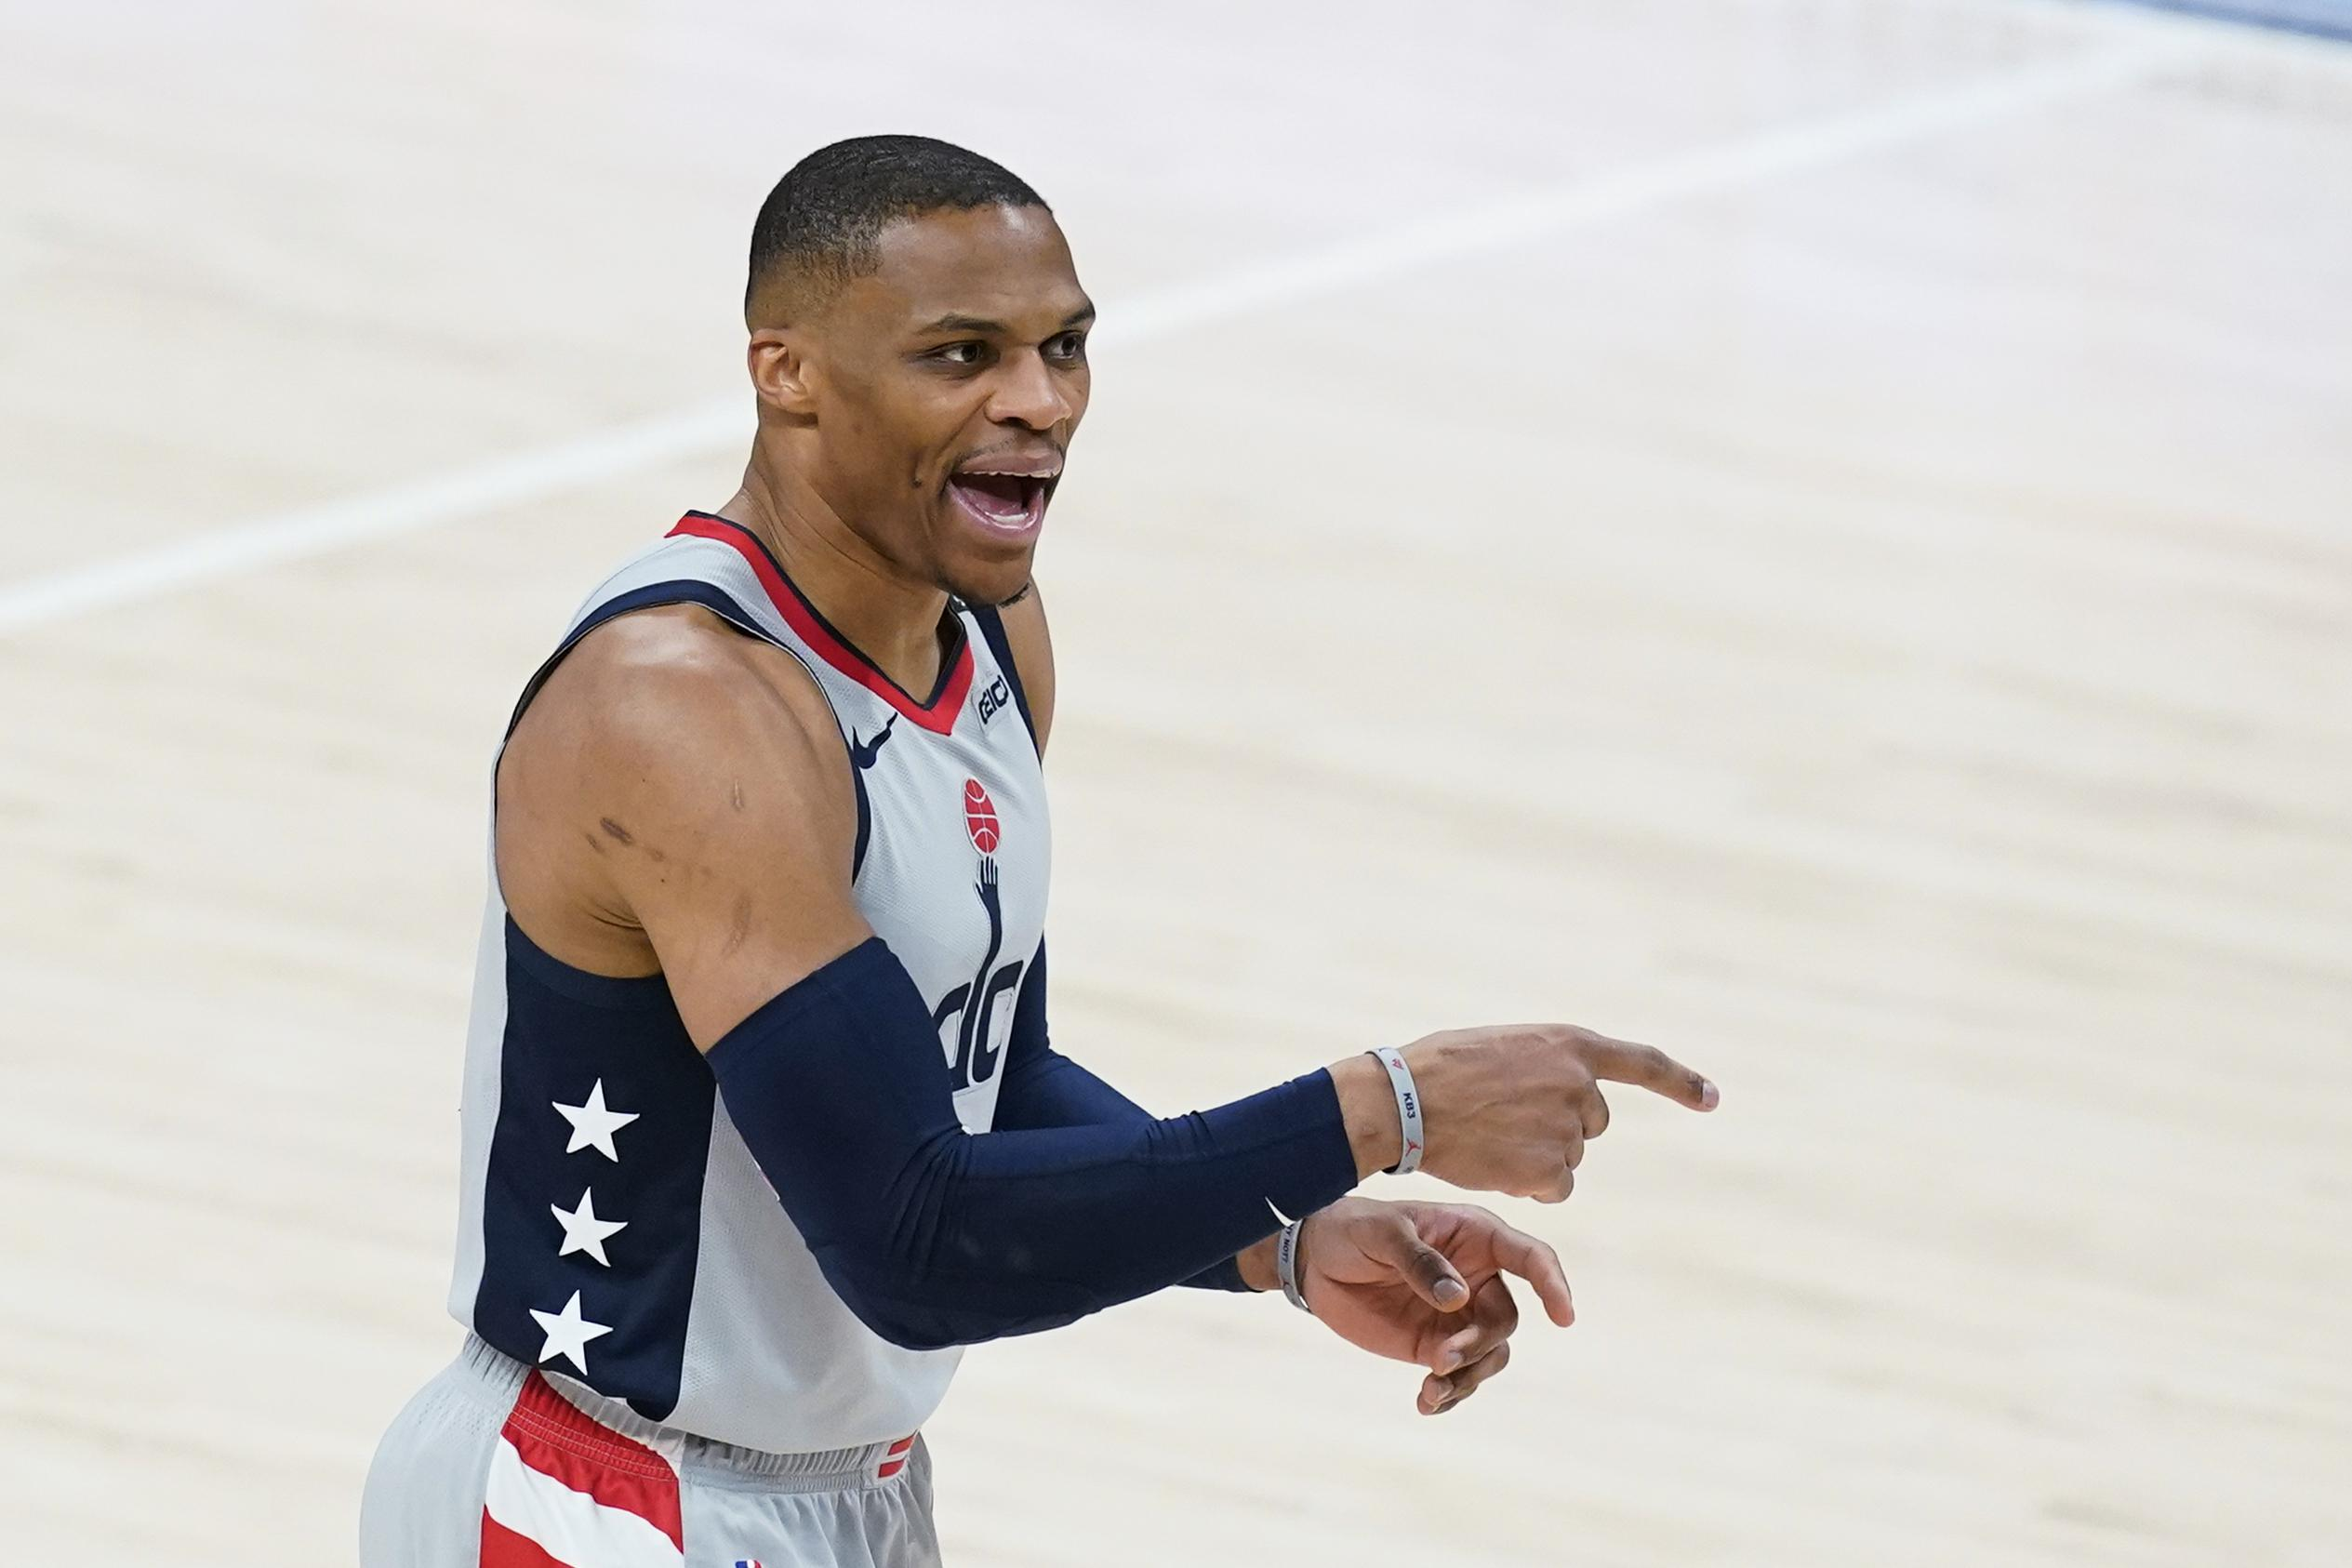 Westbrook basks in milestone moment of tying Big O's record